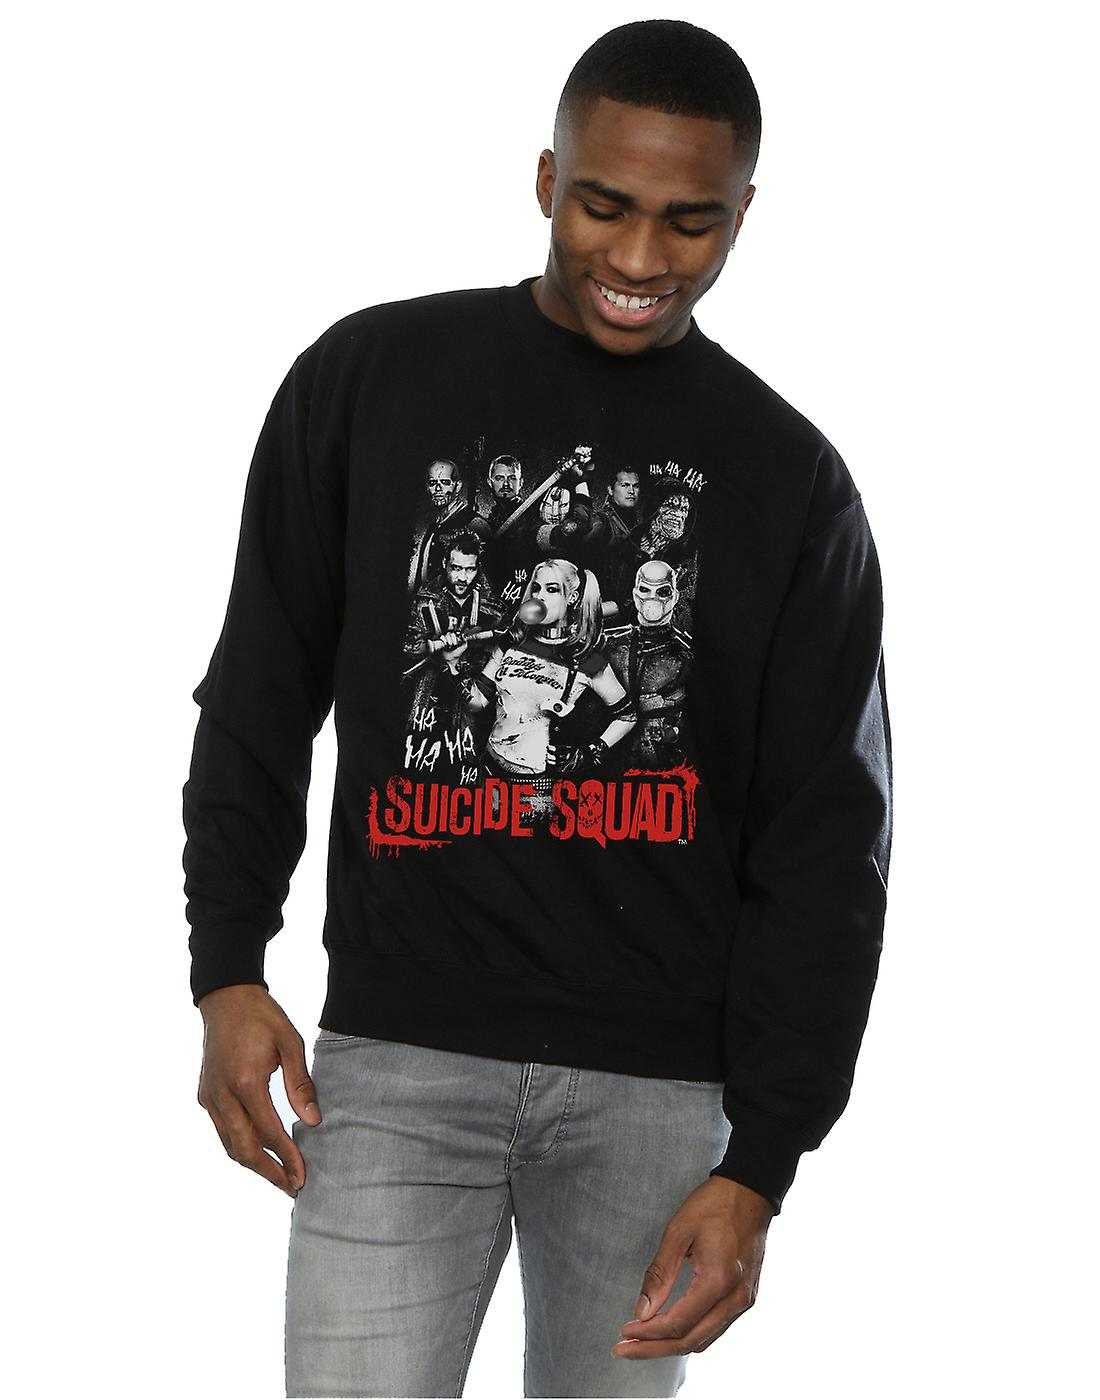 Harley Quinn Gang Sweatshirt Suicide Squad masculine